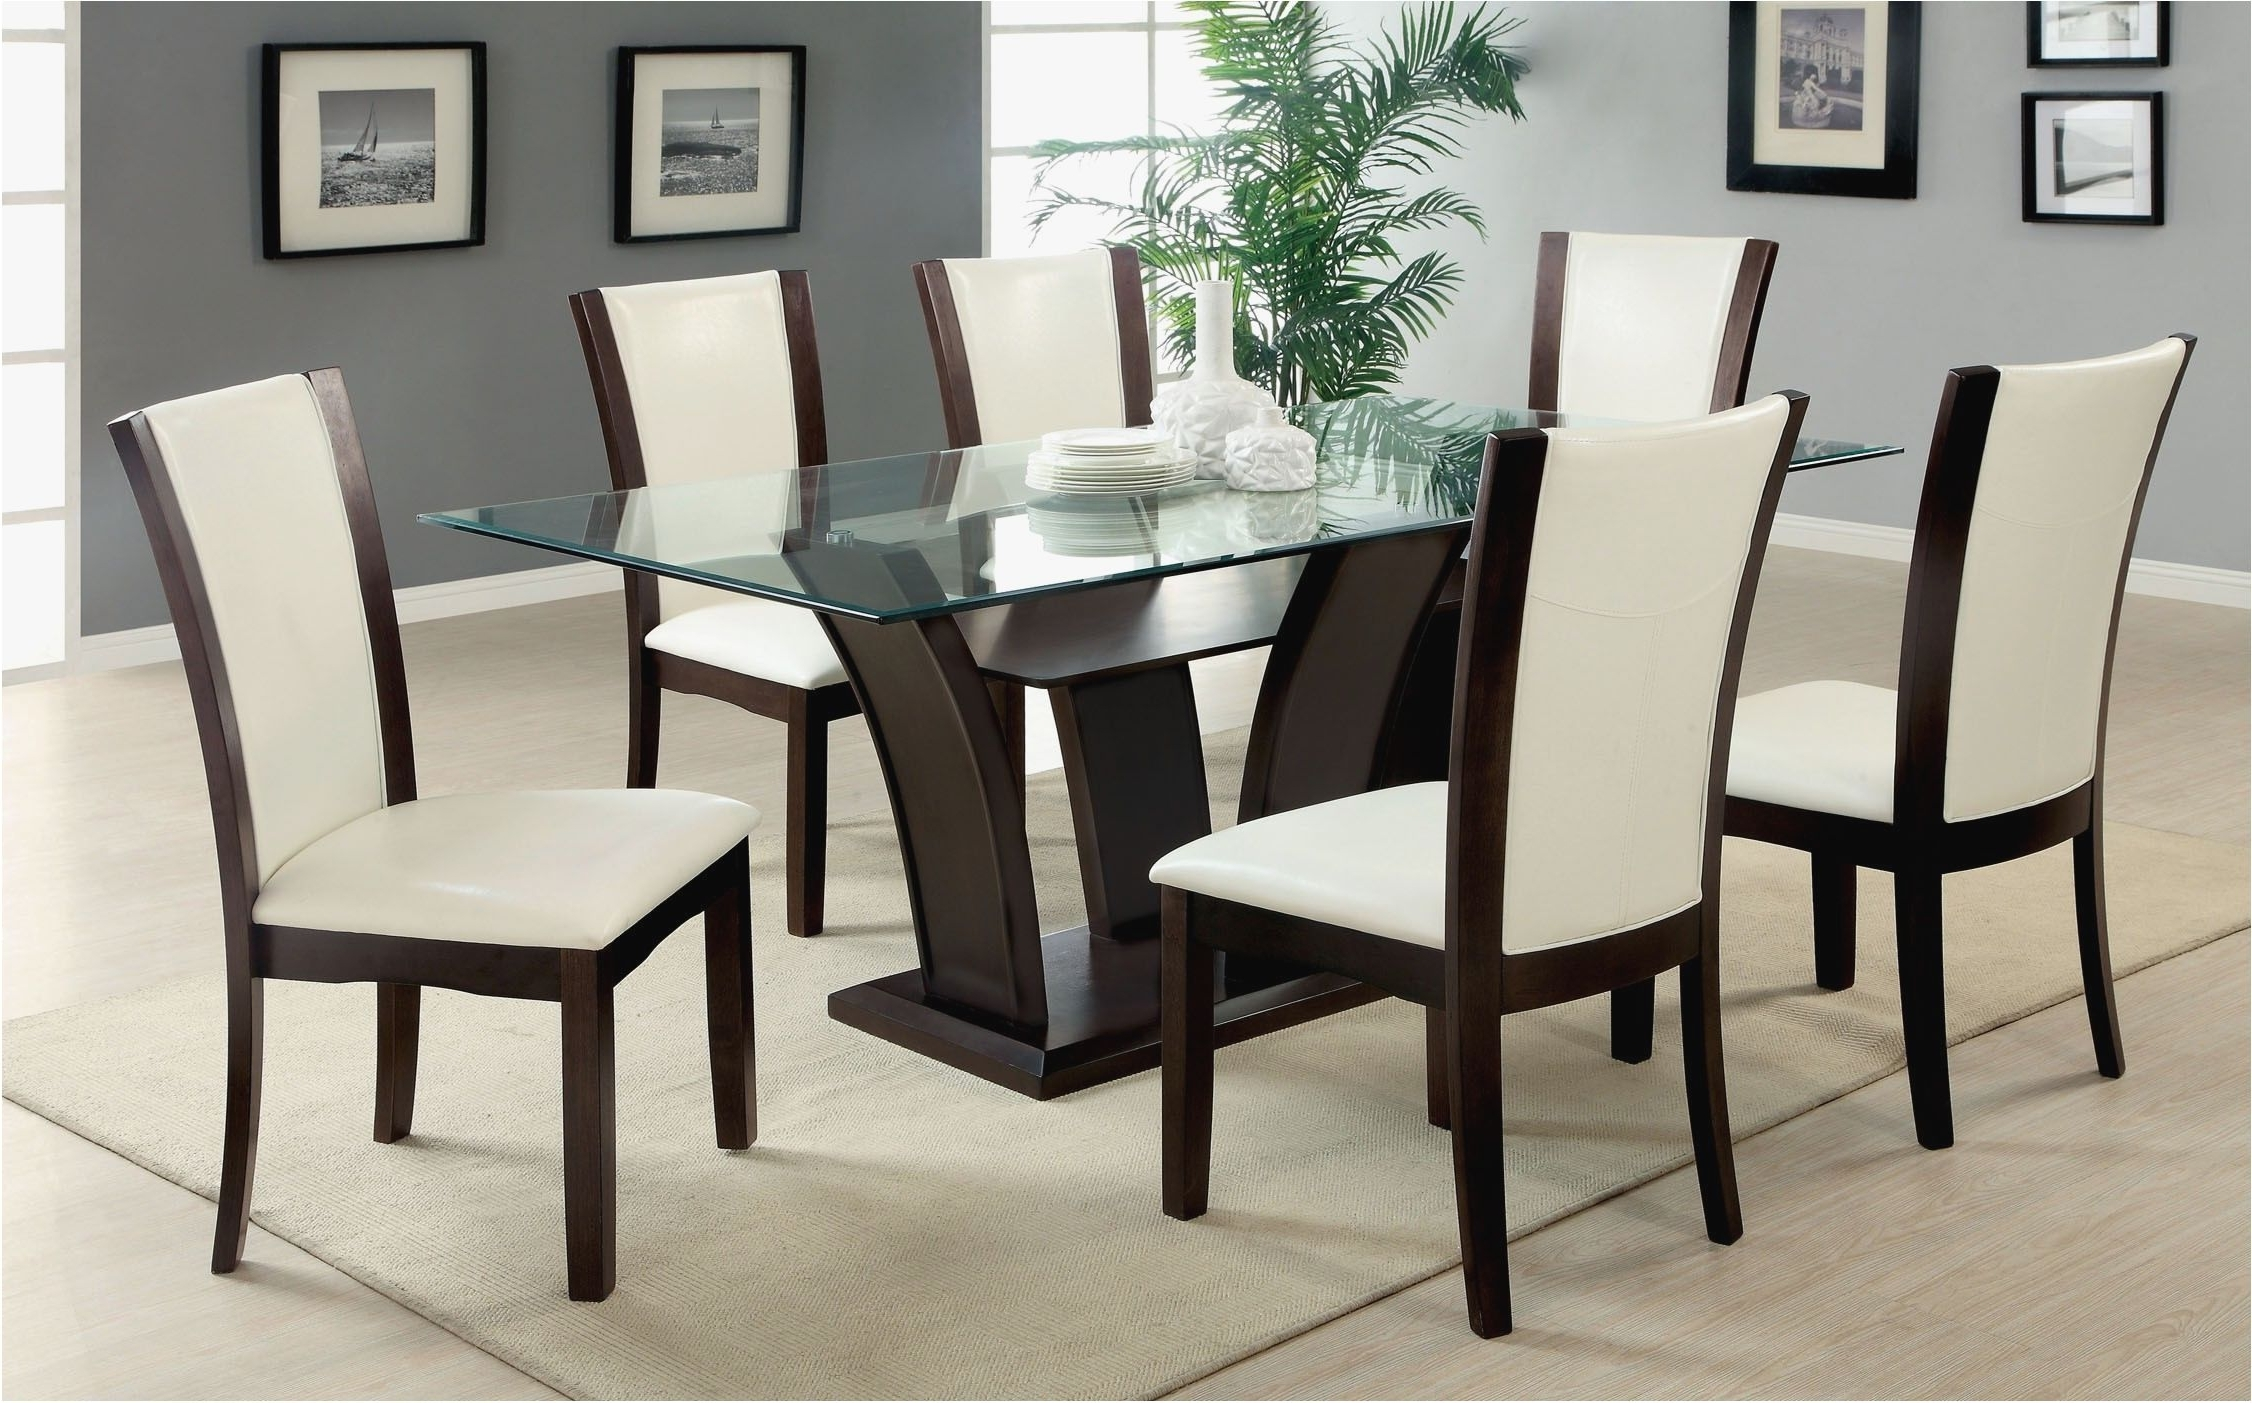 Spectacular 6 Chair Dining Table Inspiration 2018 Dining Table Set 6 Intended For Most Recently Released Dining Tables With 6 Chairs (View 4 of 25)